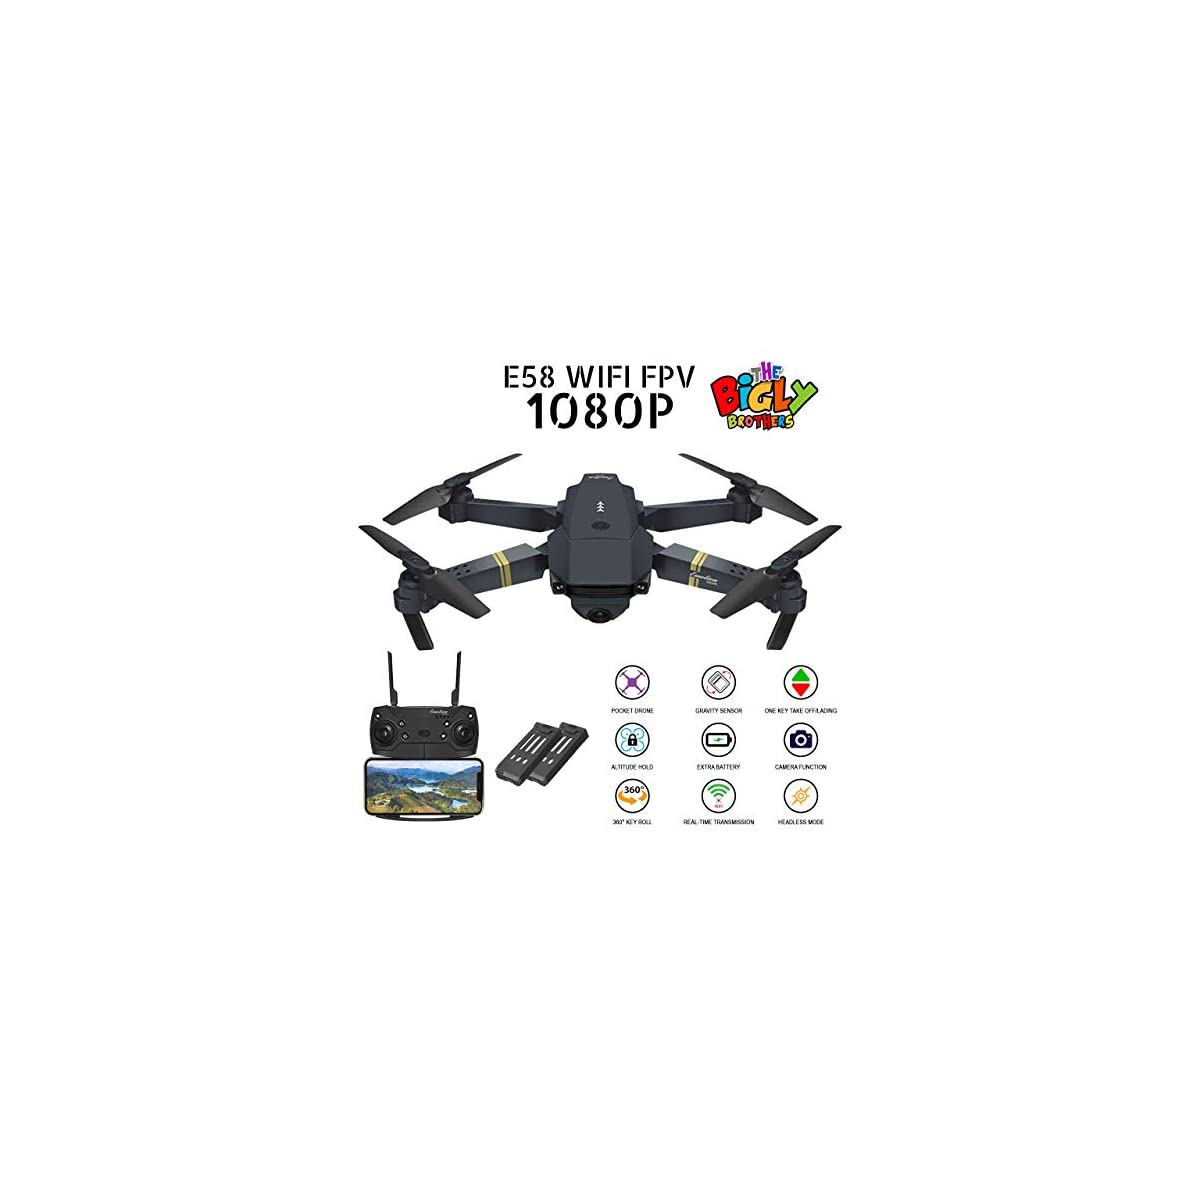 SaleProductsOffer - No.1 Best Online Store 51jSbMXxZJL Bigly Brothers E58 S Edition Drone Upgraded with 1080P HD Camera 120° Wide-Angle Lens. Plus 1 Key 360 flip and 1 Key take Off/Landing functionality. Foldable Drone with Extra 3.7V 500mAh Lipo Battery